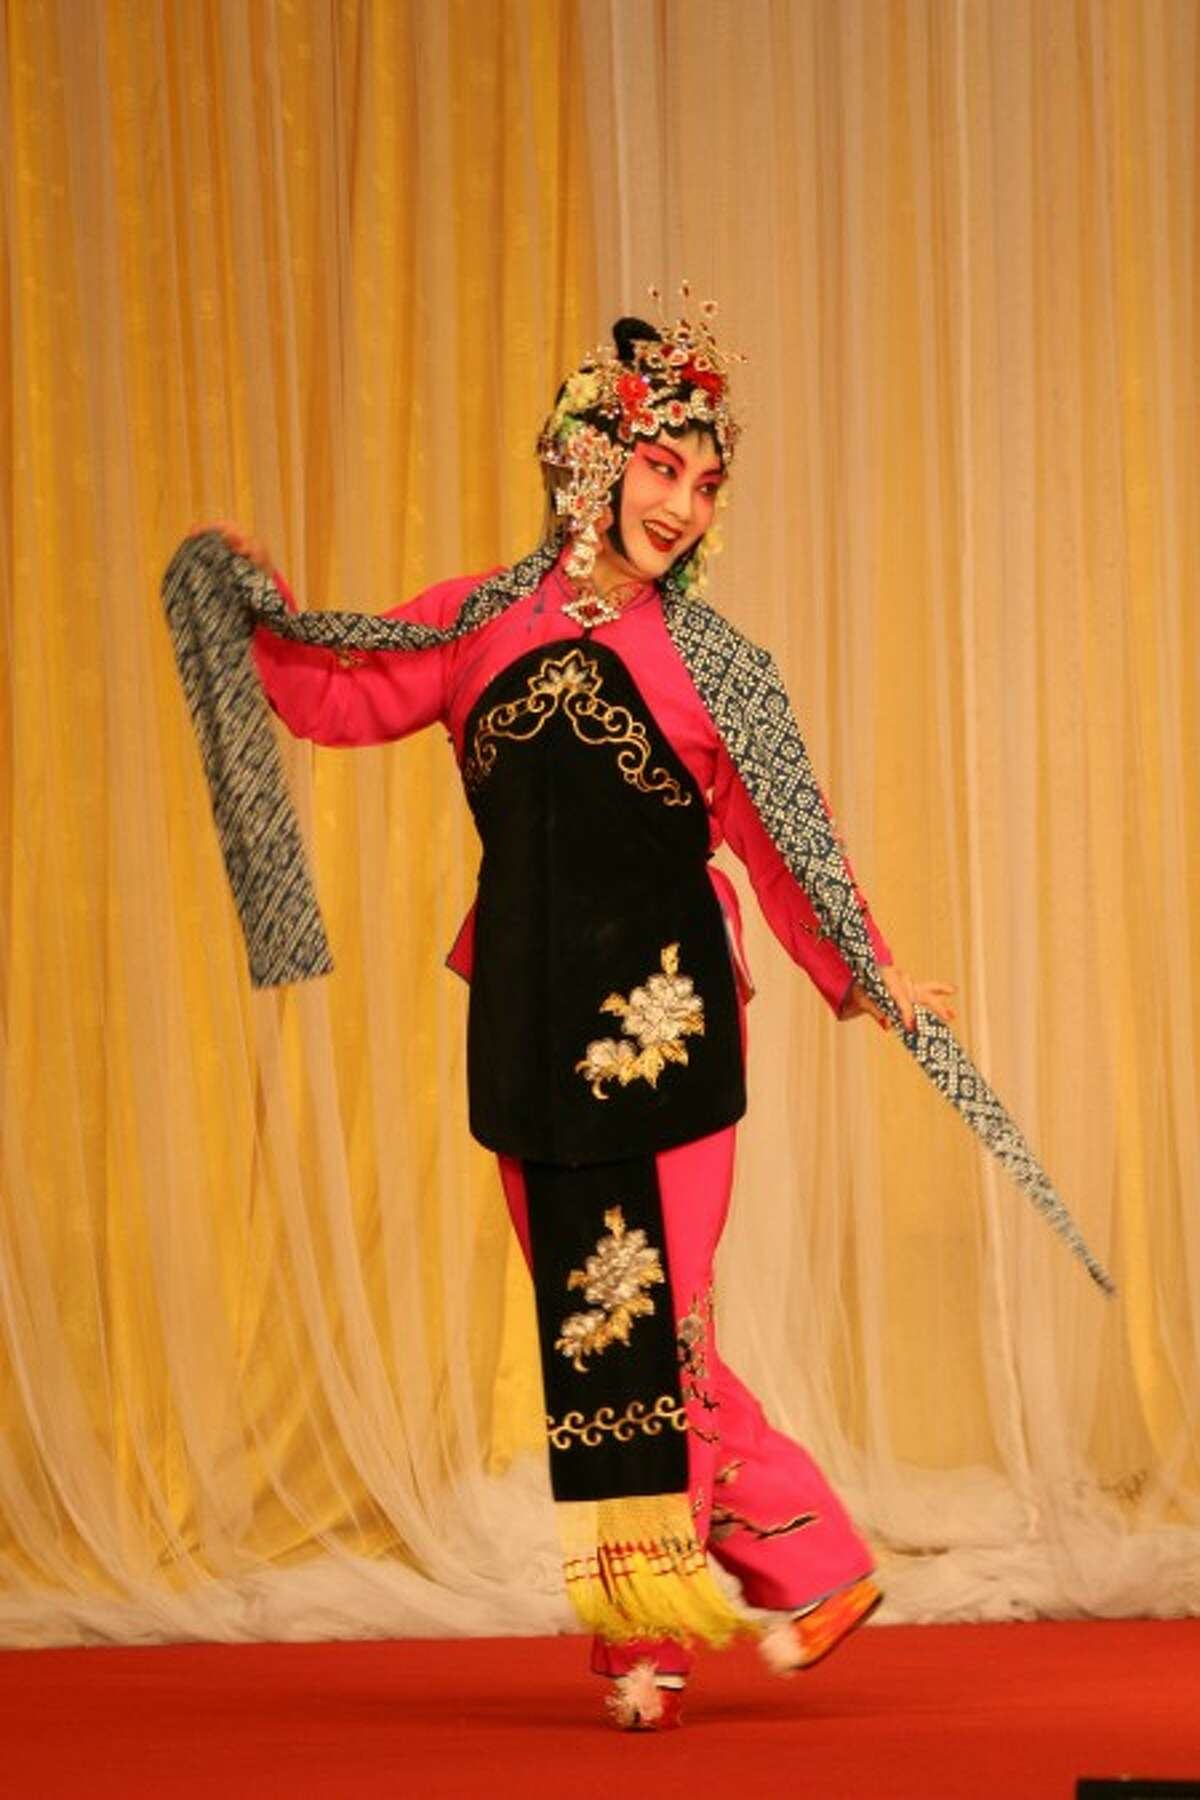 Contributed photo Xue-ling Qin isa lead performer with the New York Chinese Opera Society which will perform May 3 in New Canaan.